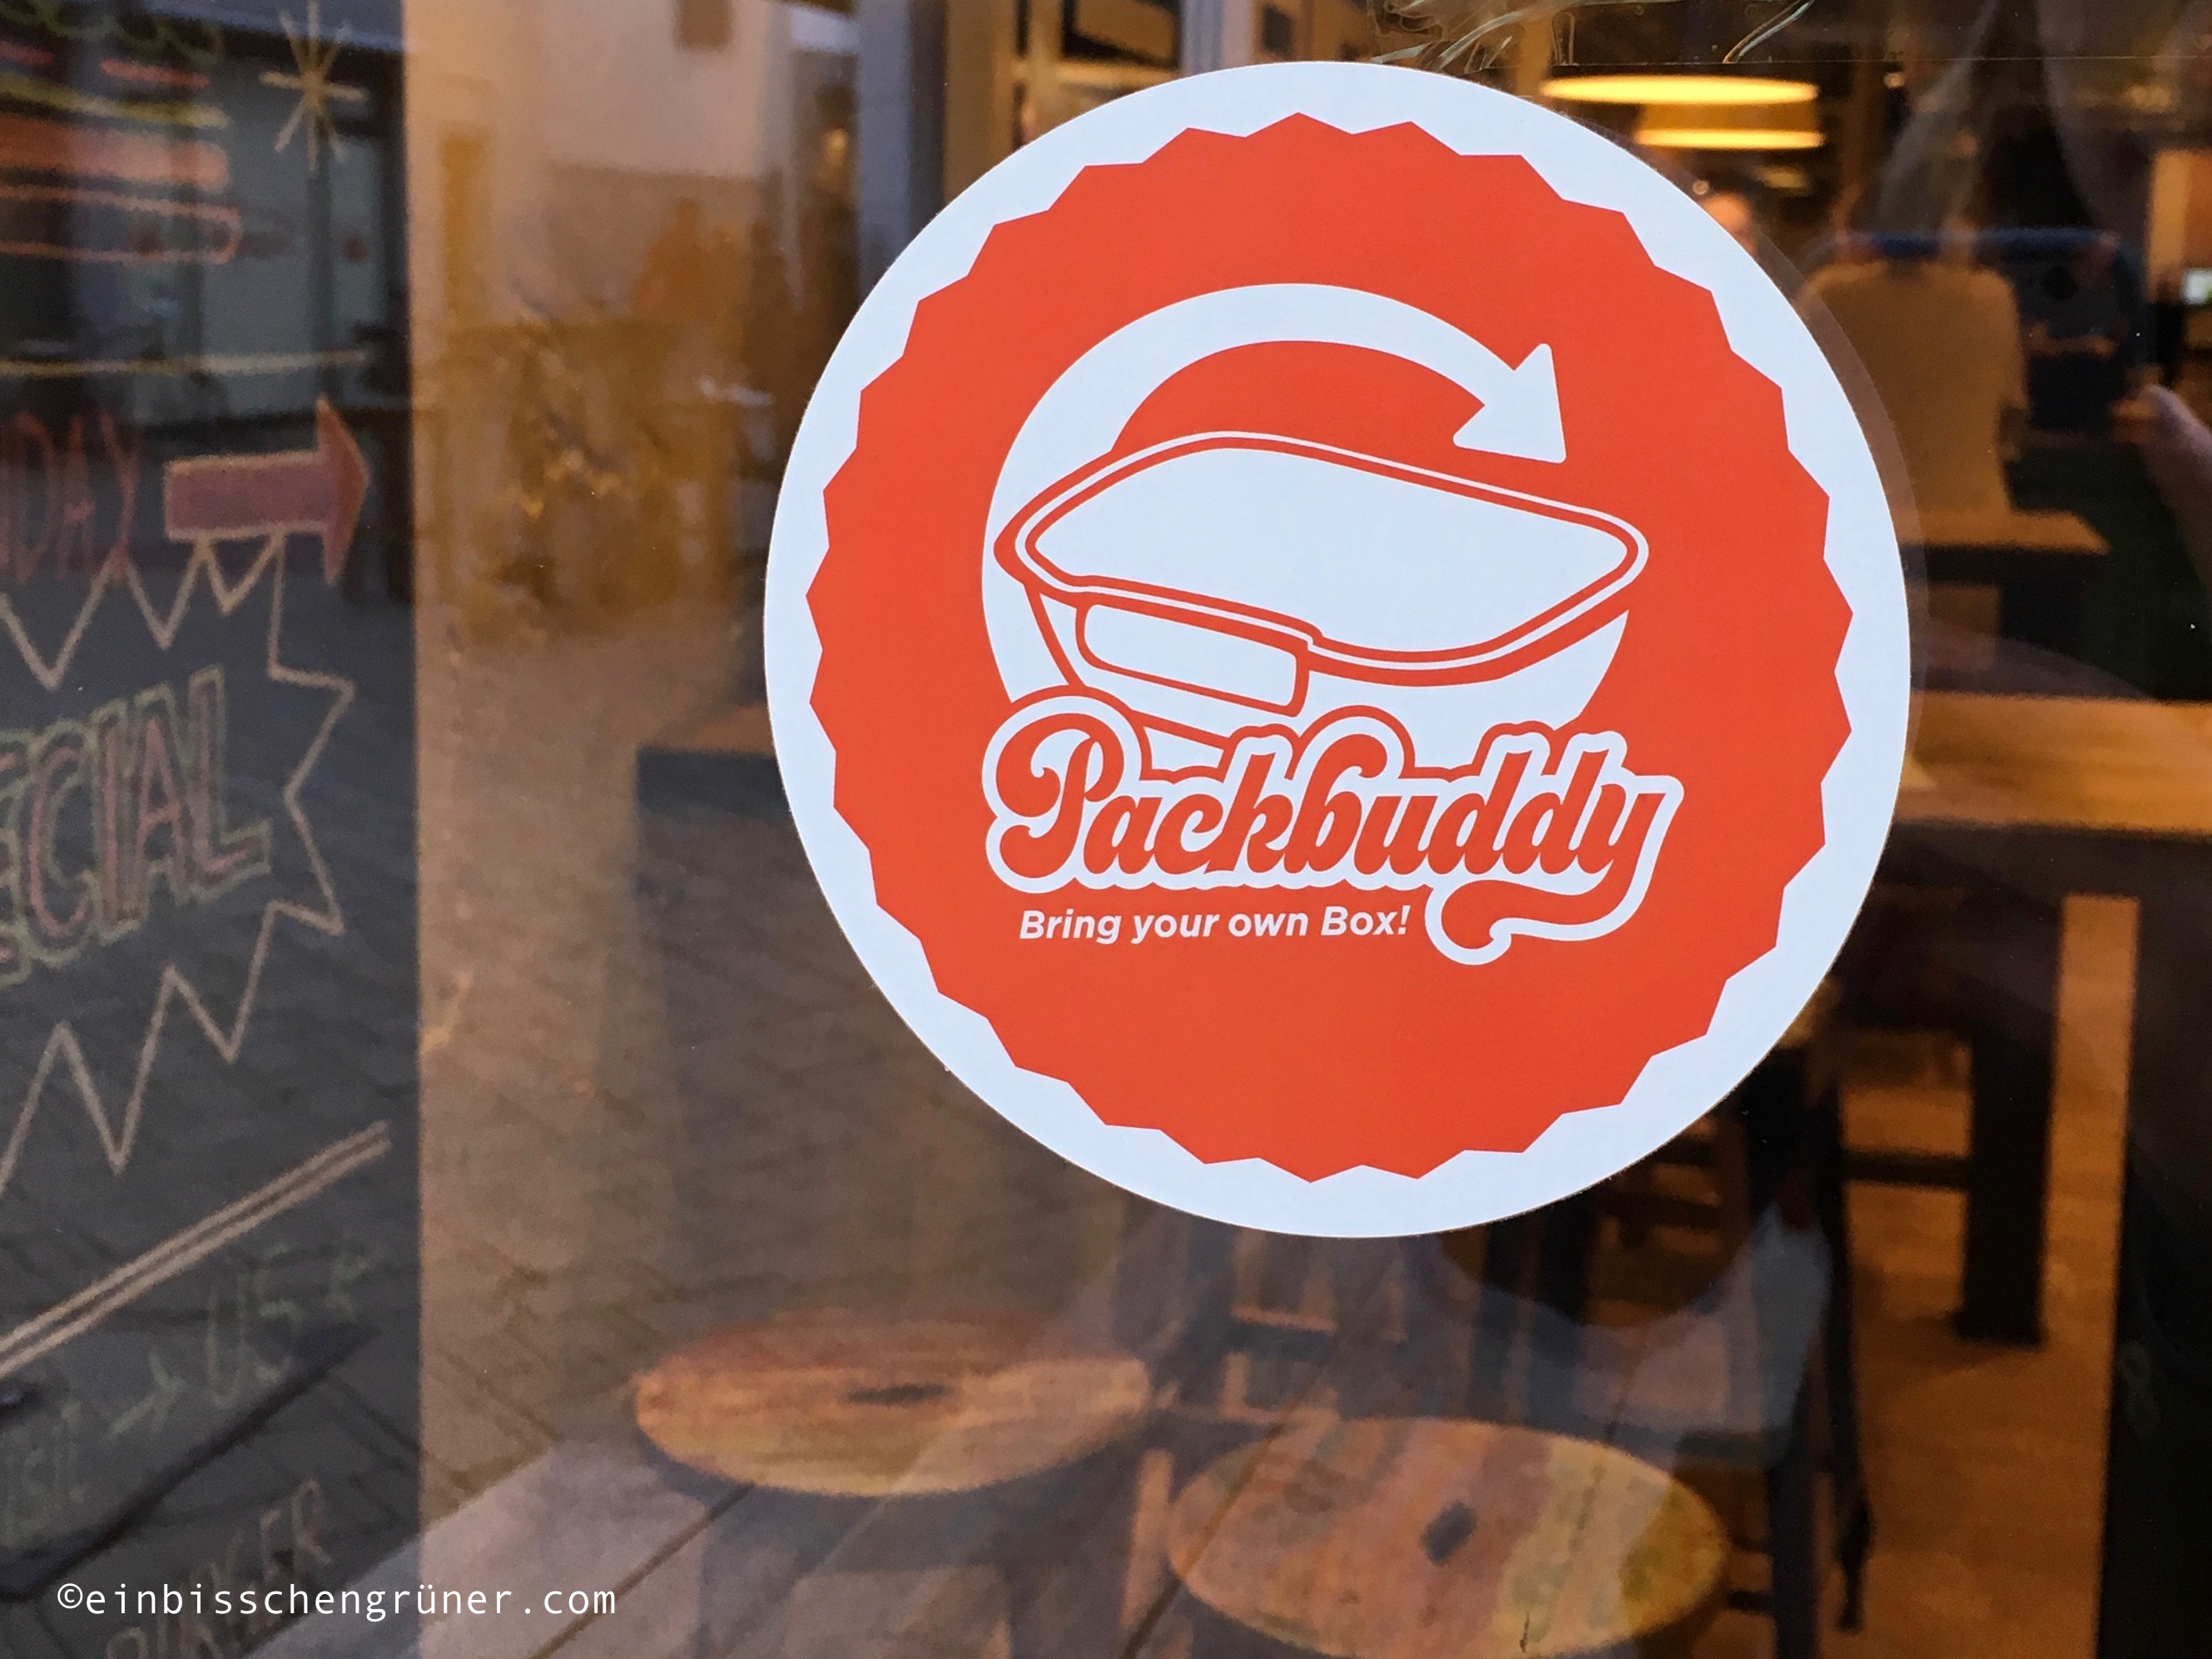 Packbuddy für Oldenburg